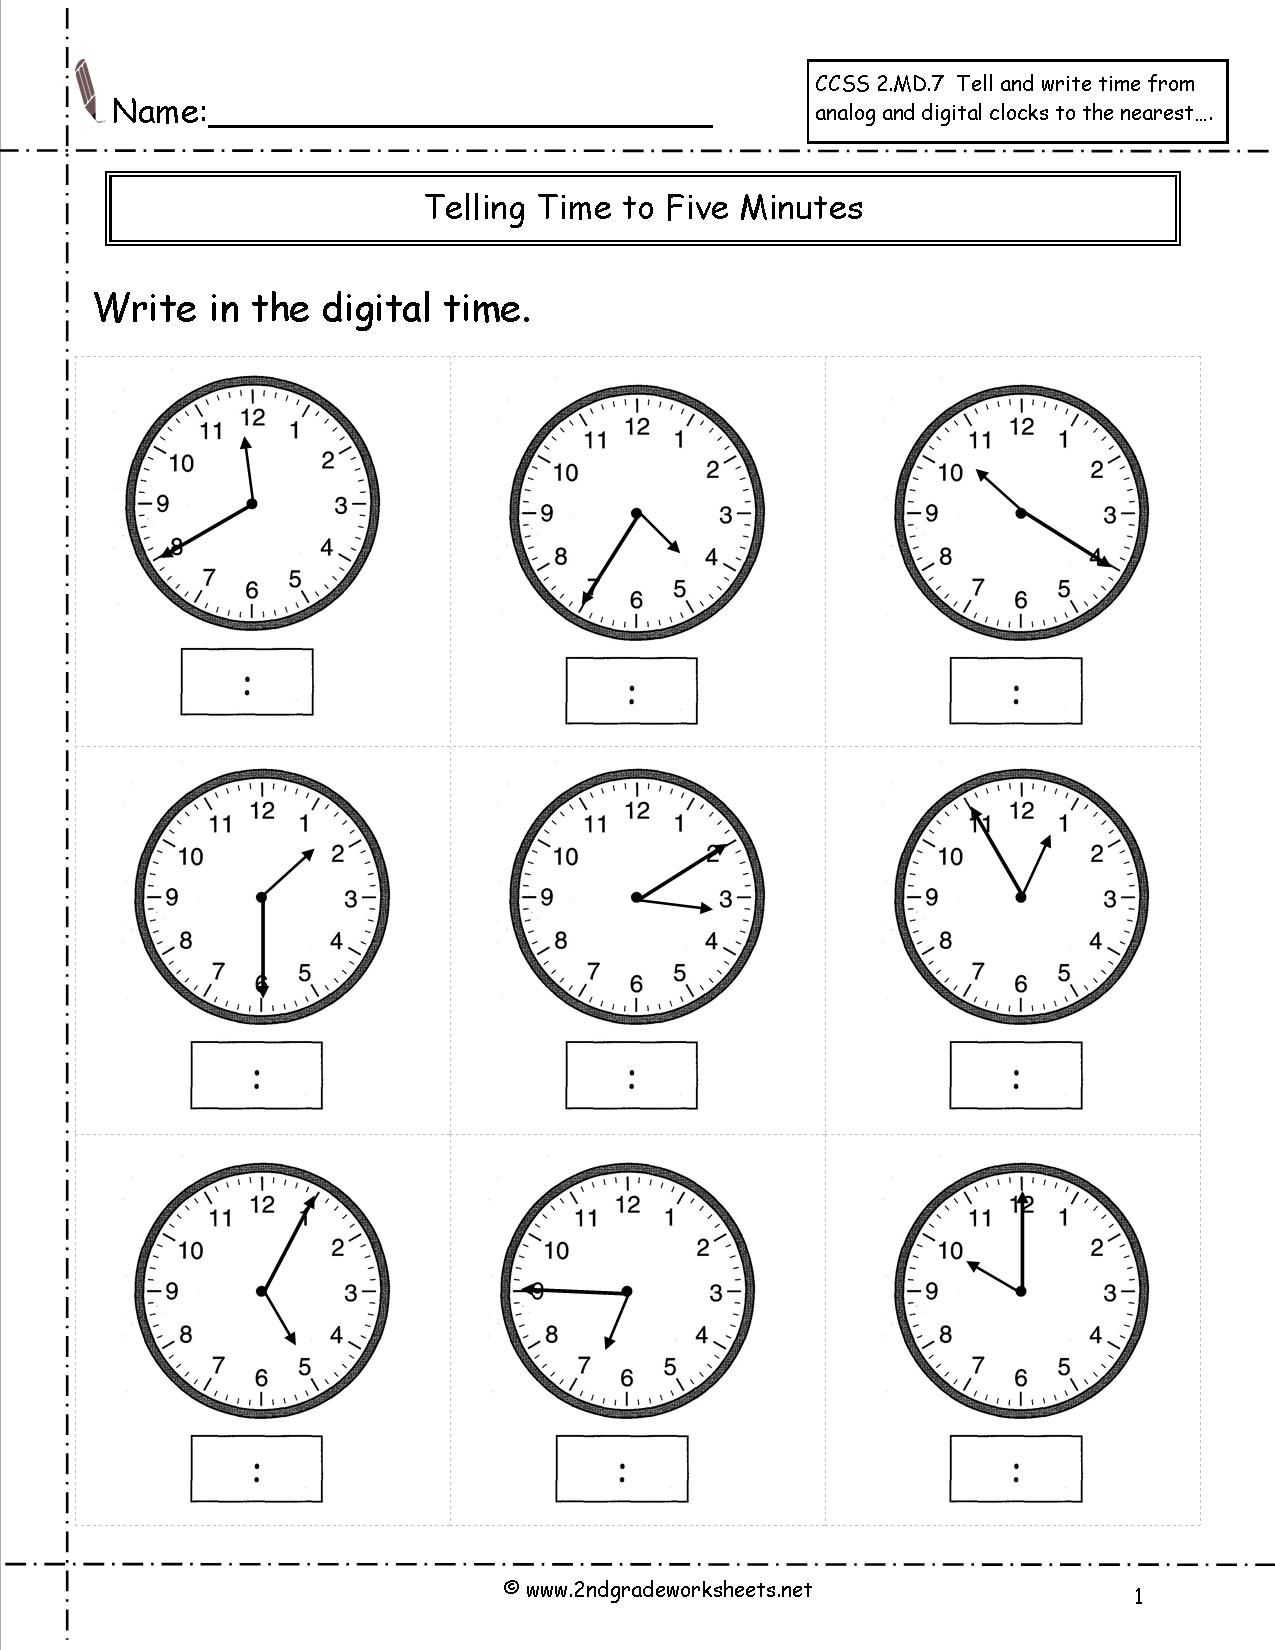 Telling Time To Nearest Five Minutes Worksheet Telling Time